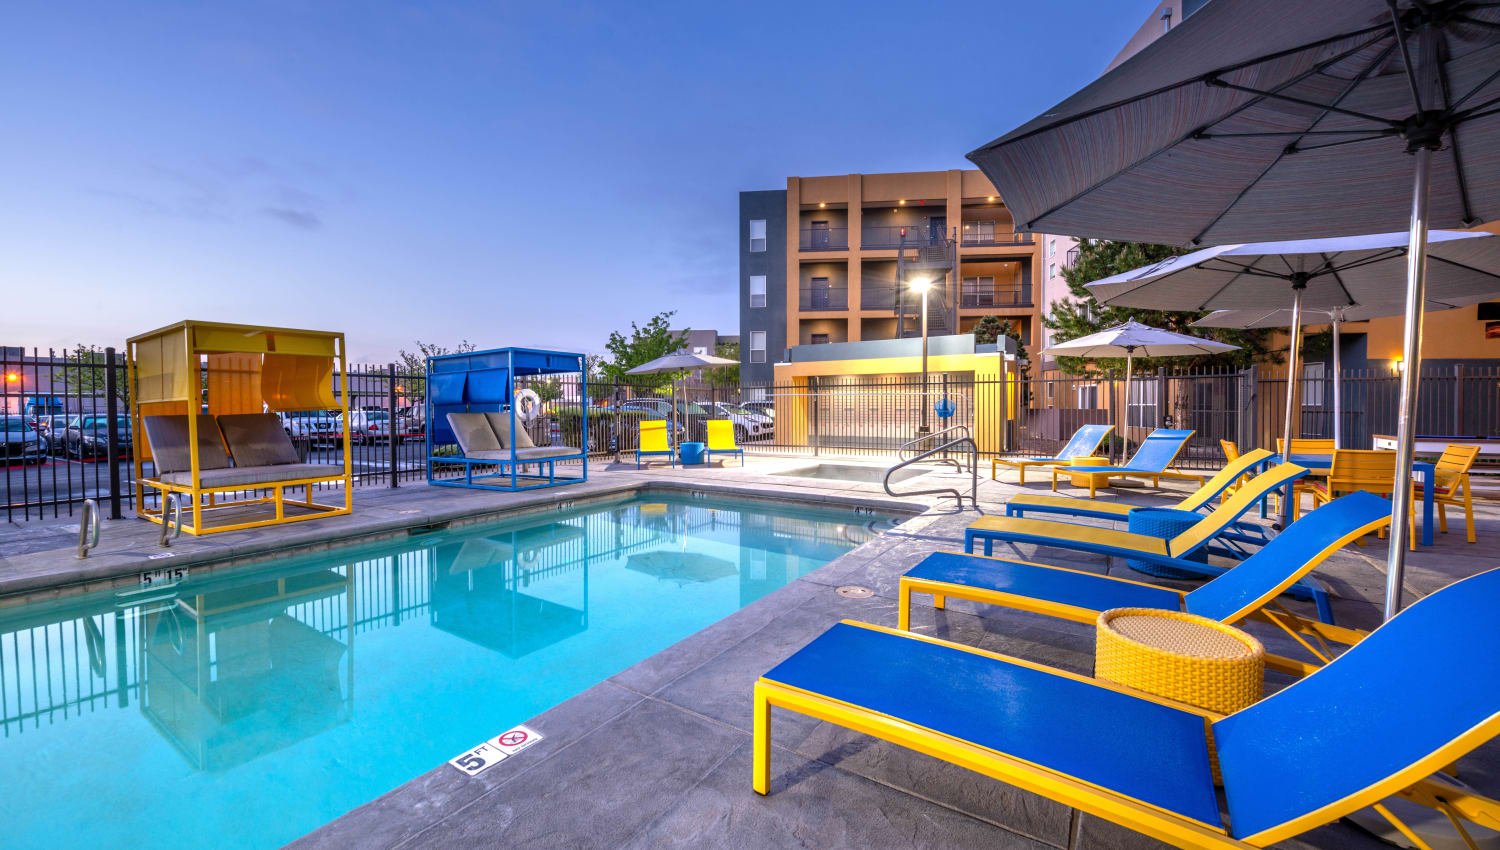 Serene swimming pool flanked by lounge chairs at dusk at Olympus Solaire in Albuquerque, New Mexico